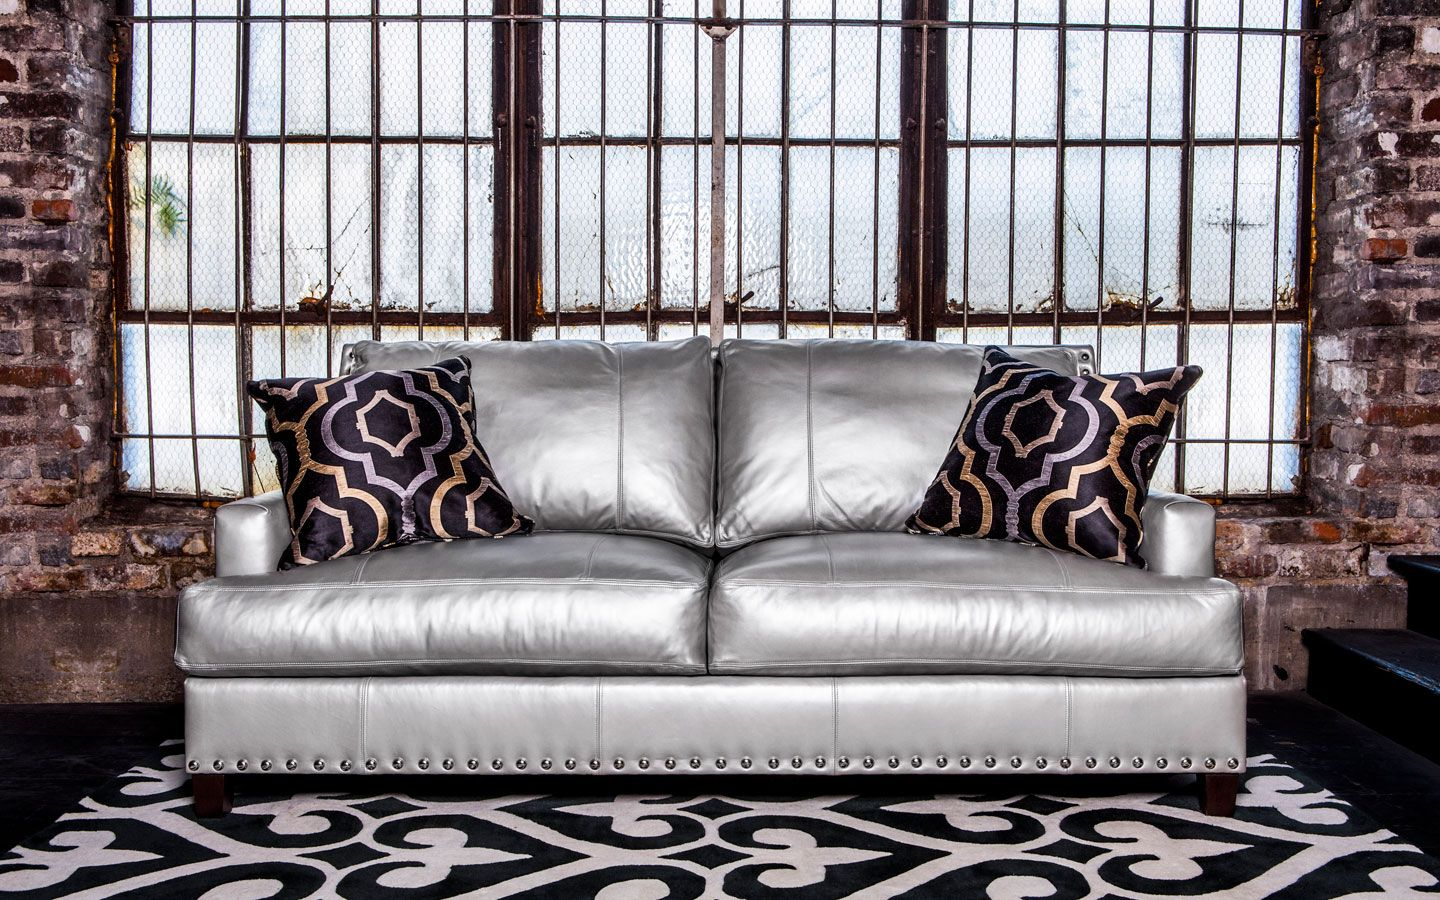 Linkin Sofa In Leather Your Can Order And Have It 35 Days Made America Visit Us At Shealeigh S